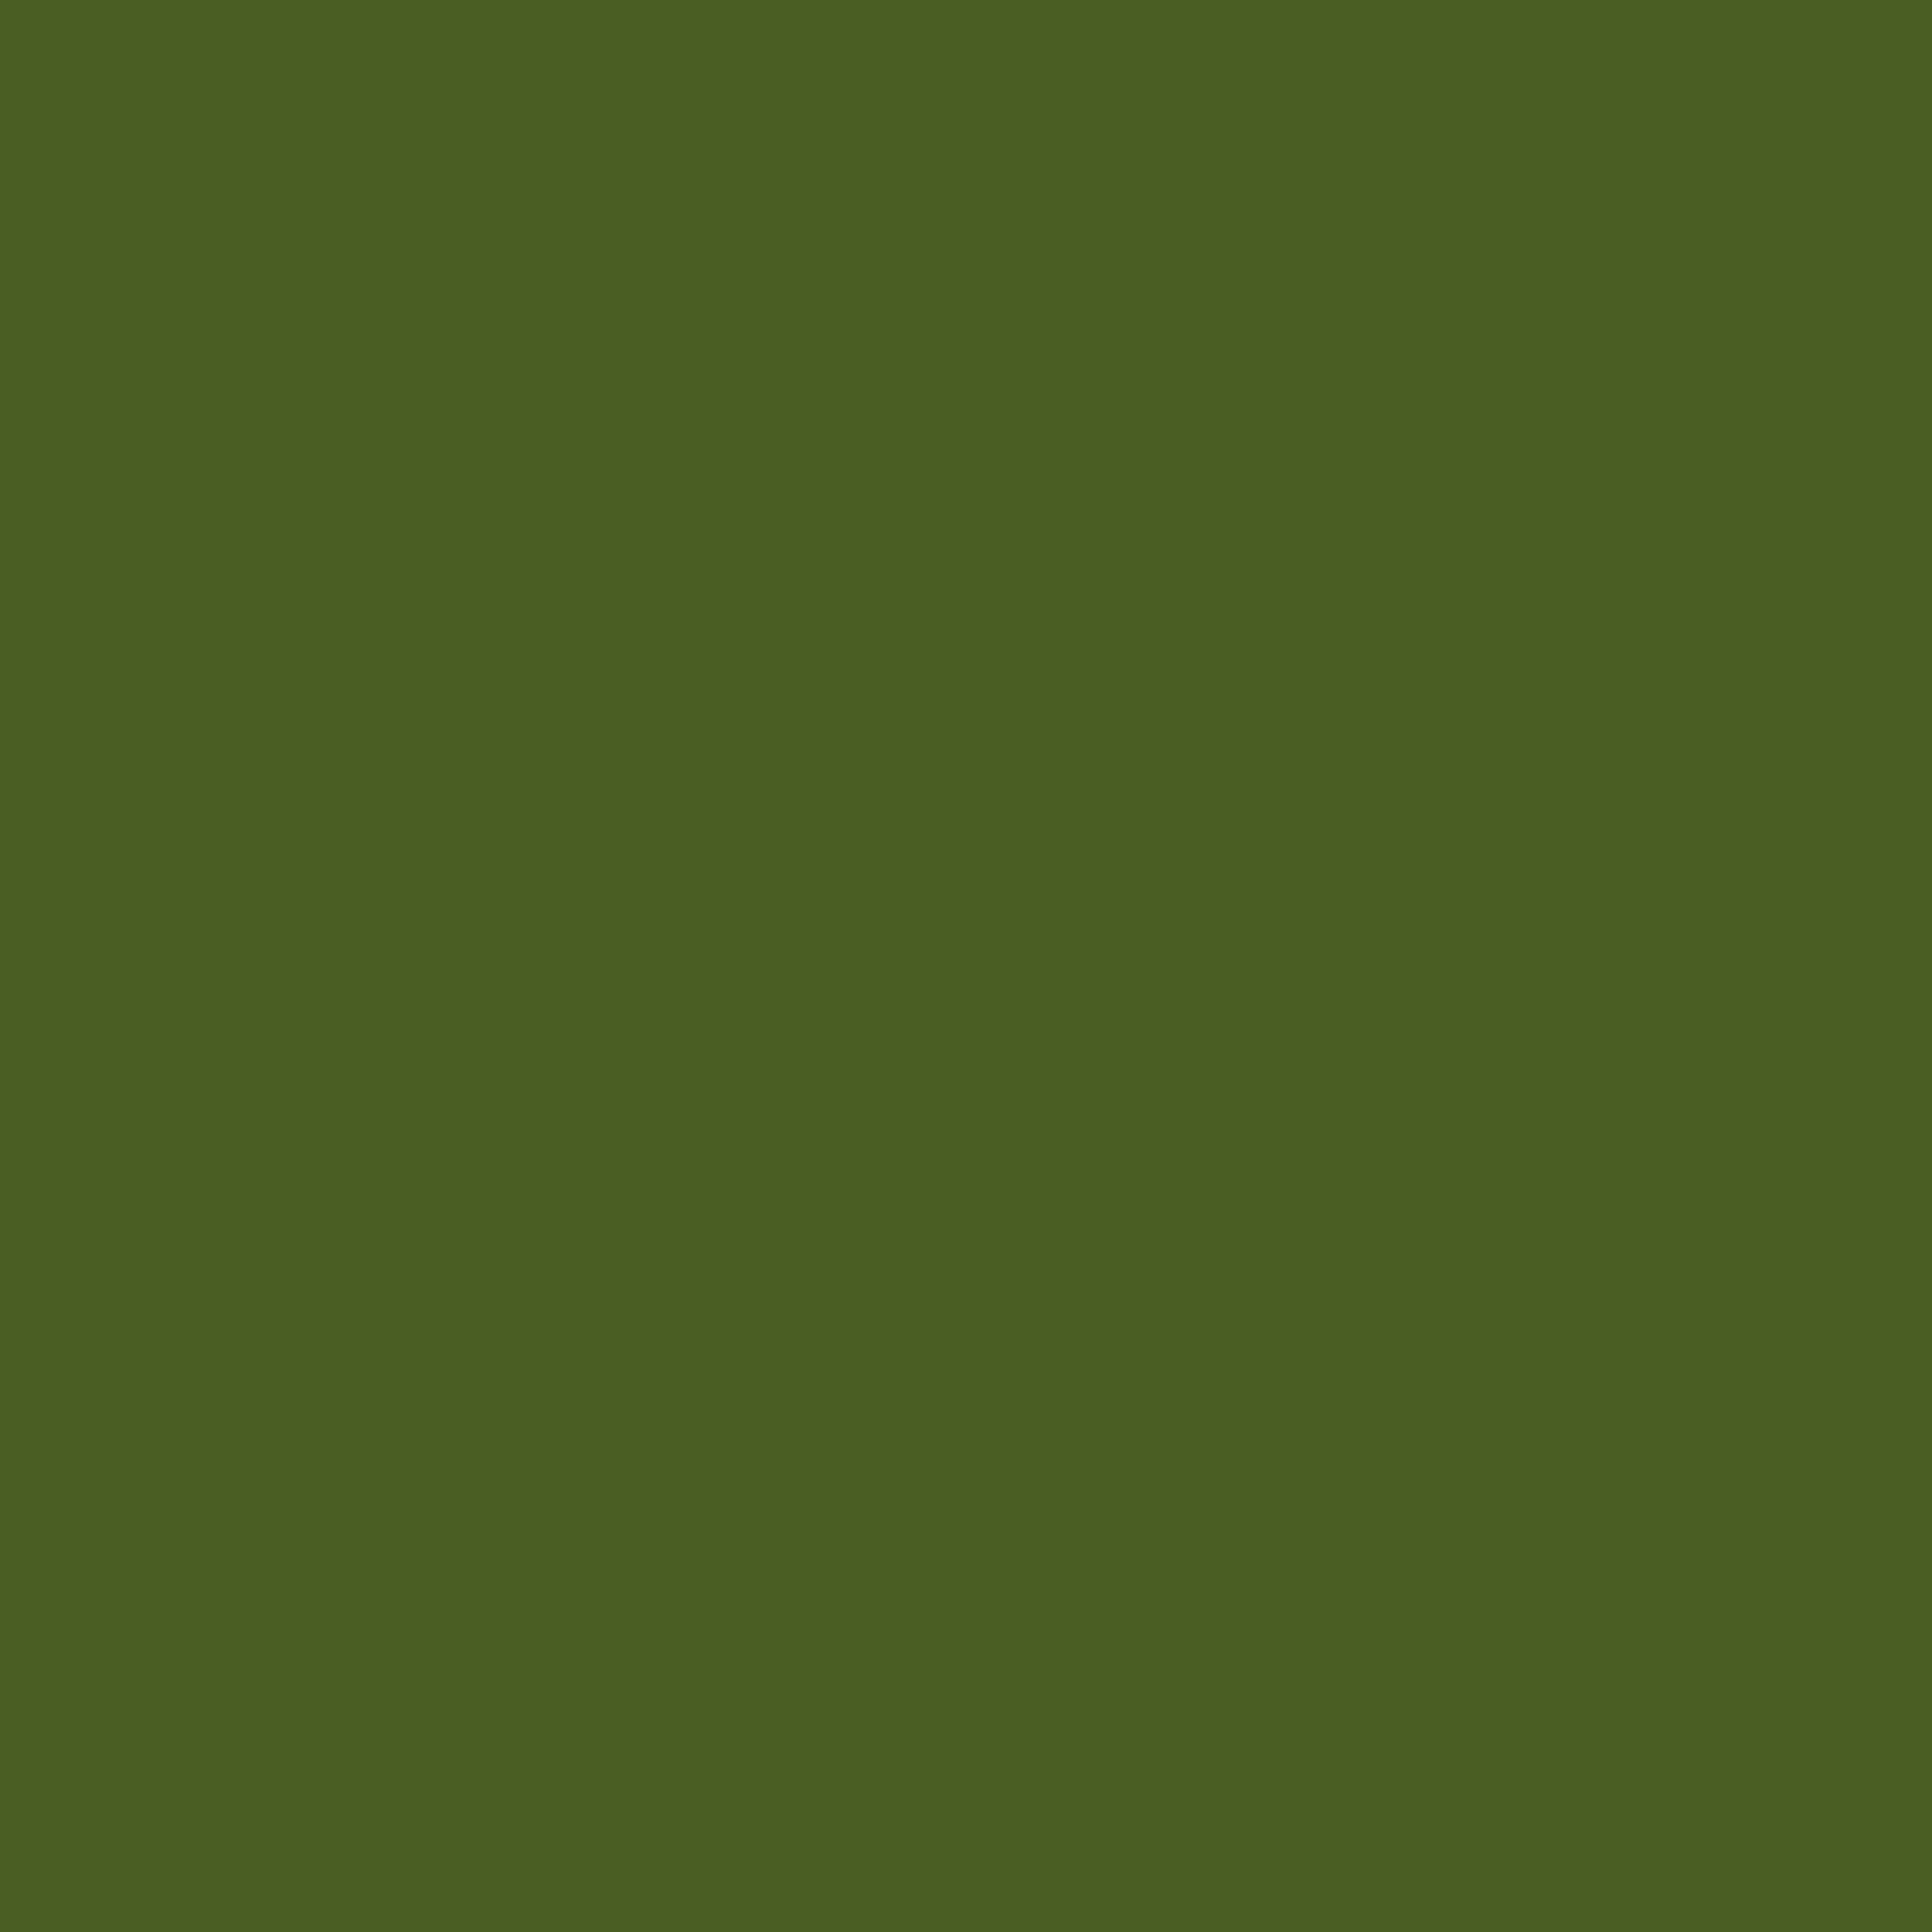 3600x3600 Dark Moss Green Solid Color Background